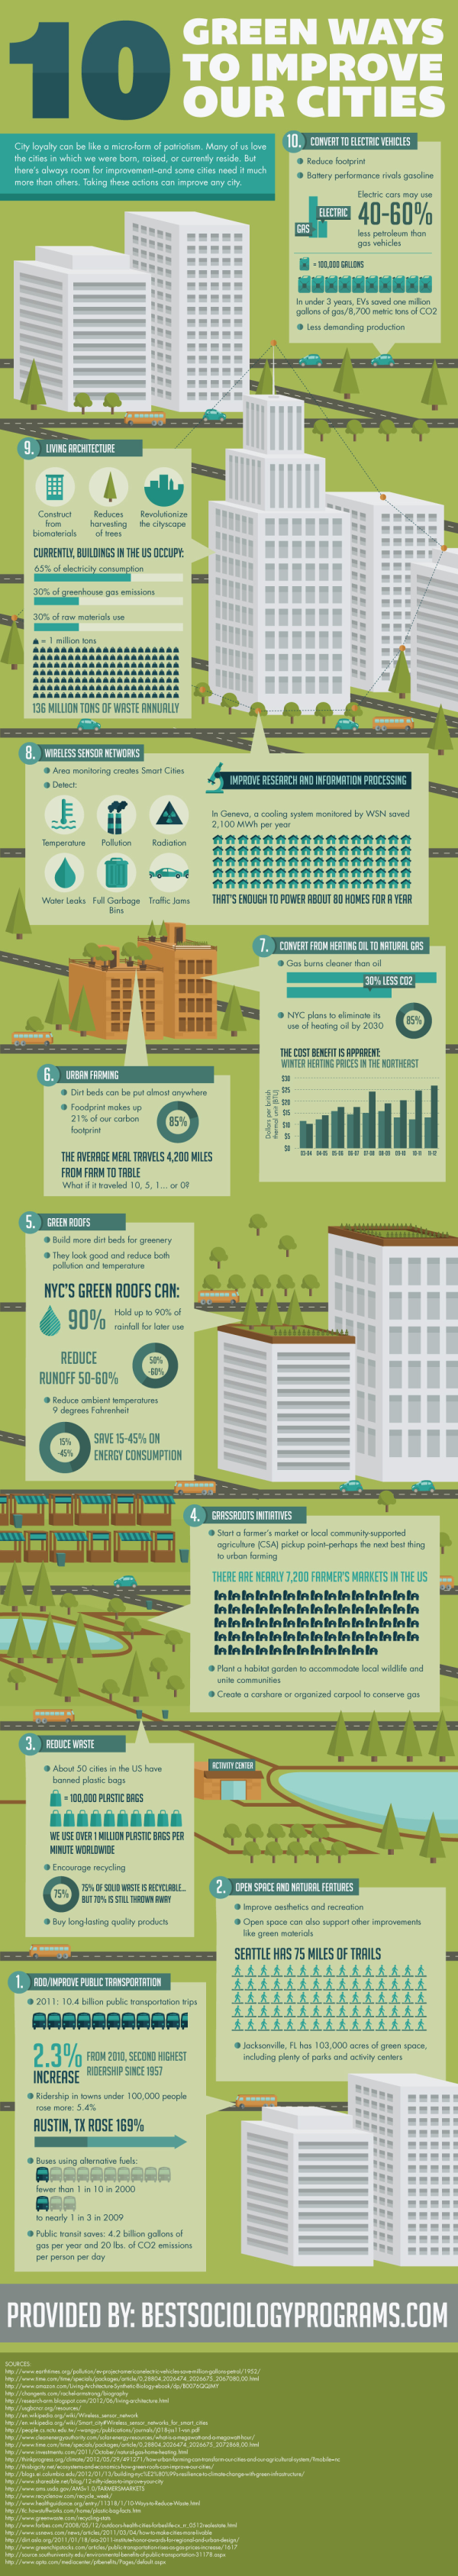 Green Ways We Can Improve Our Cities